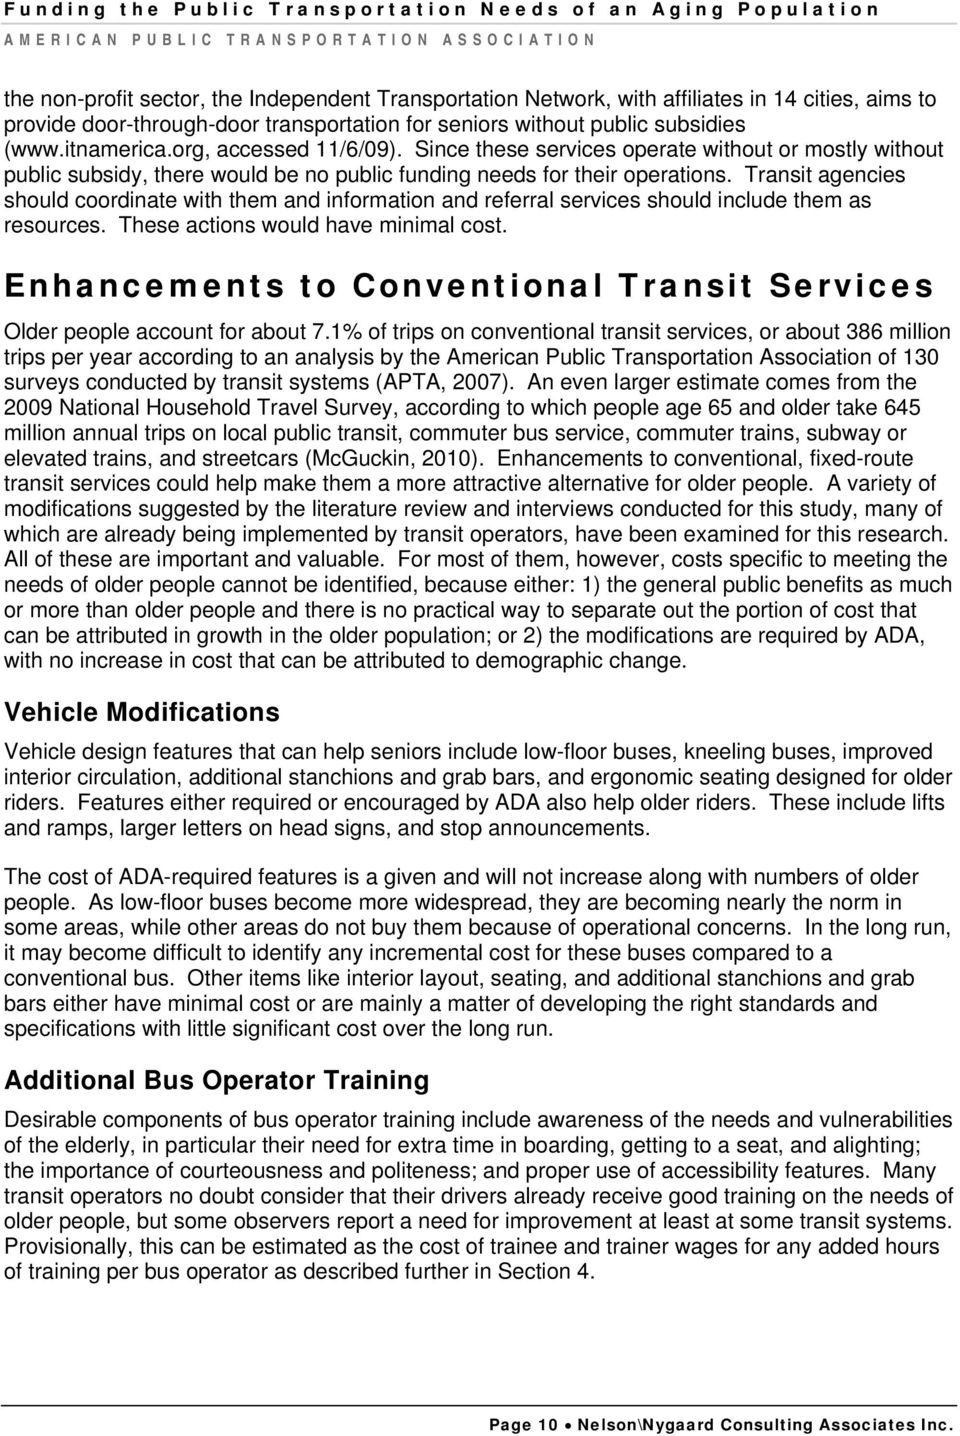 Transit agencies should coordinate with them and information and referral services should include them as resources. These actions would have minimal cost.